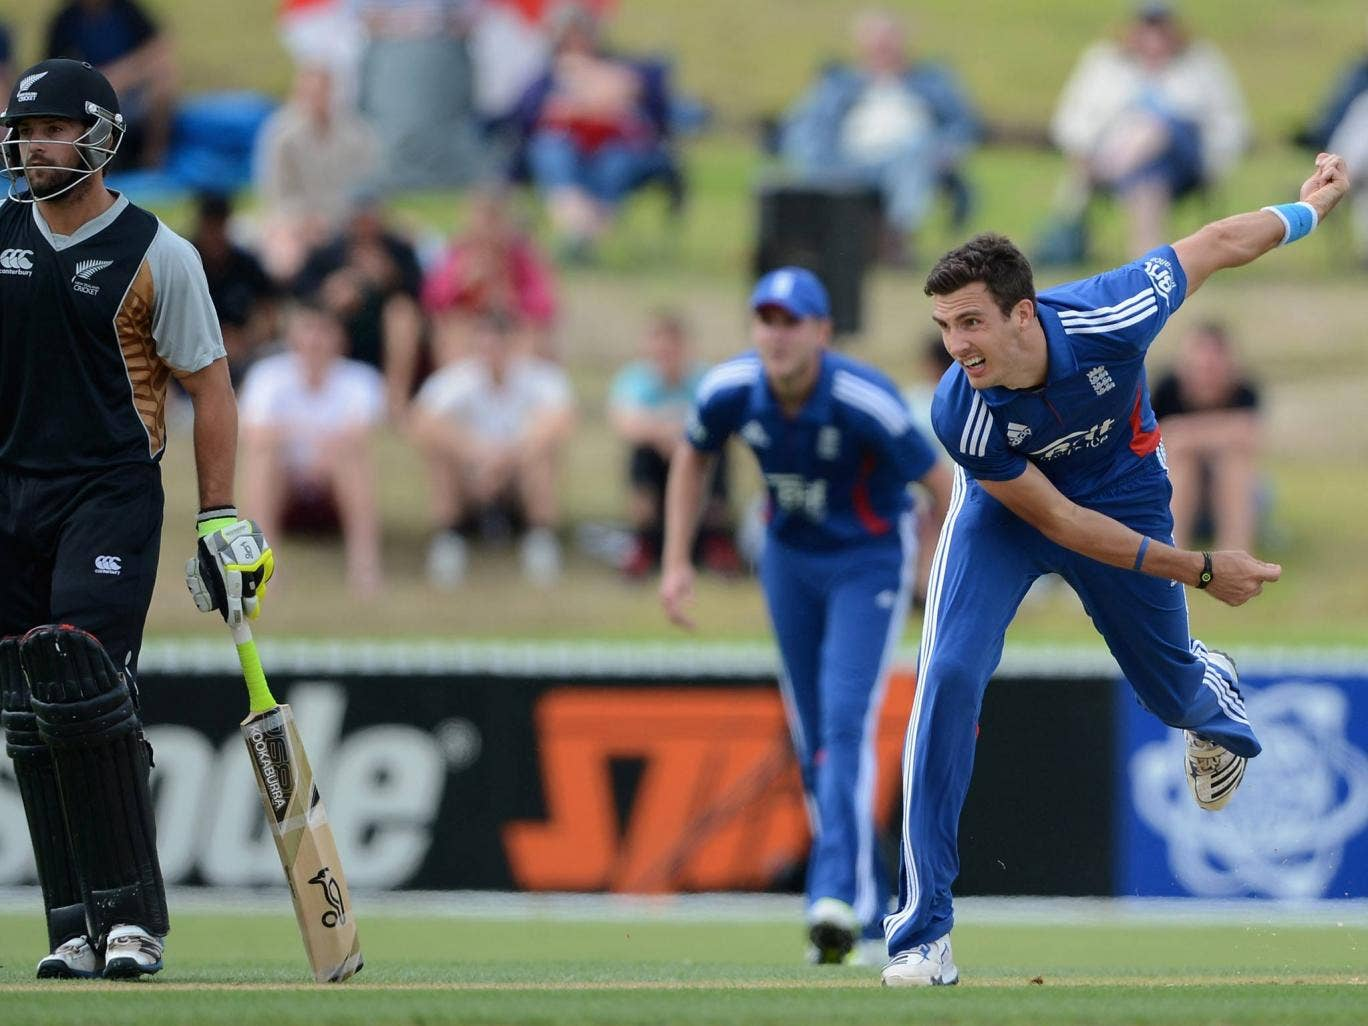 Steven Finn of England bowls during a T20 Practice Match against a New Zealand XI